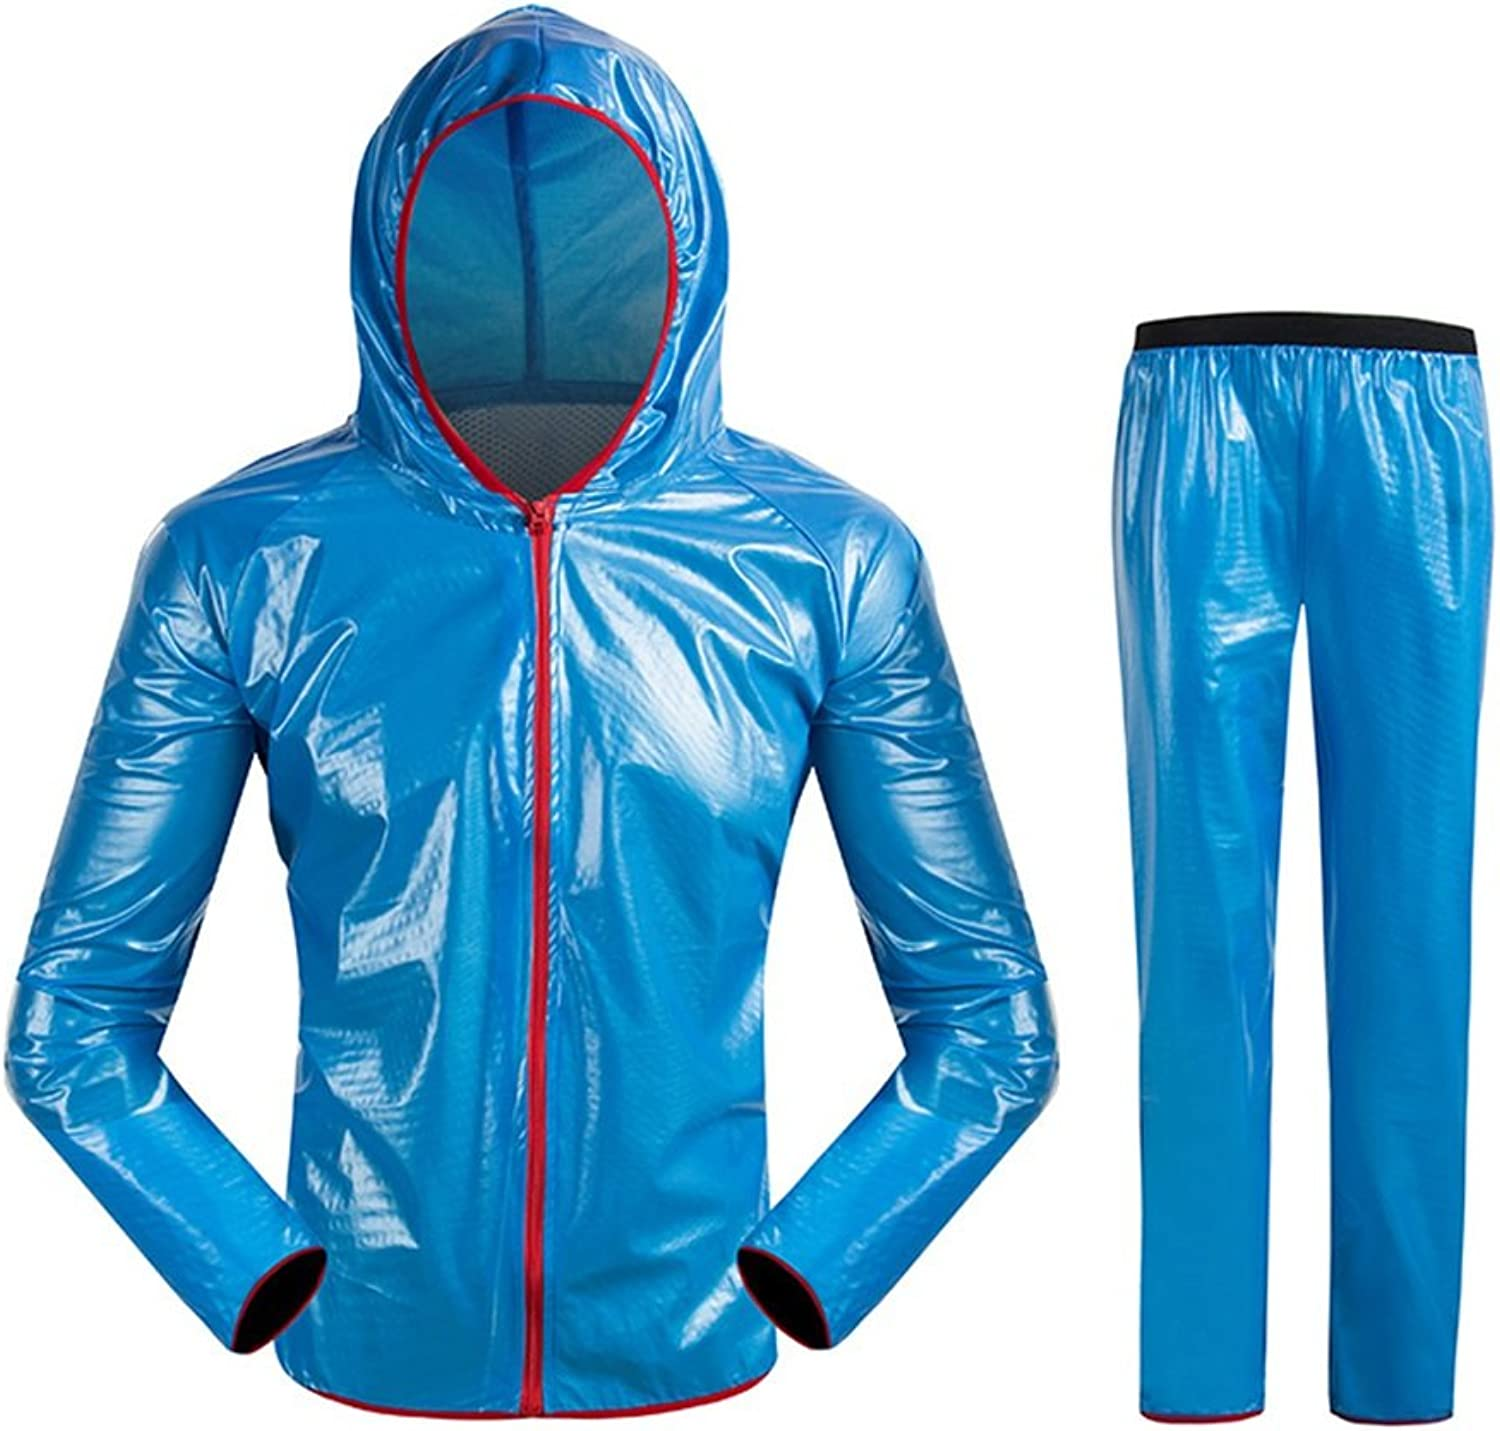 Raincoat Outdoor sports riding, mountain bike climbing split rain pants suit, male and female adult windbreaker